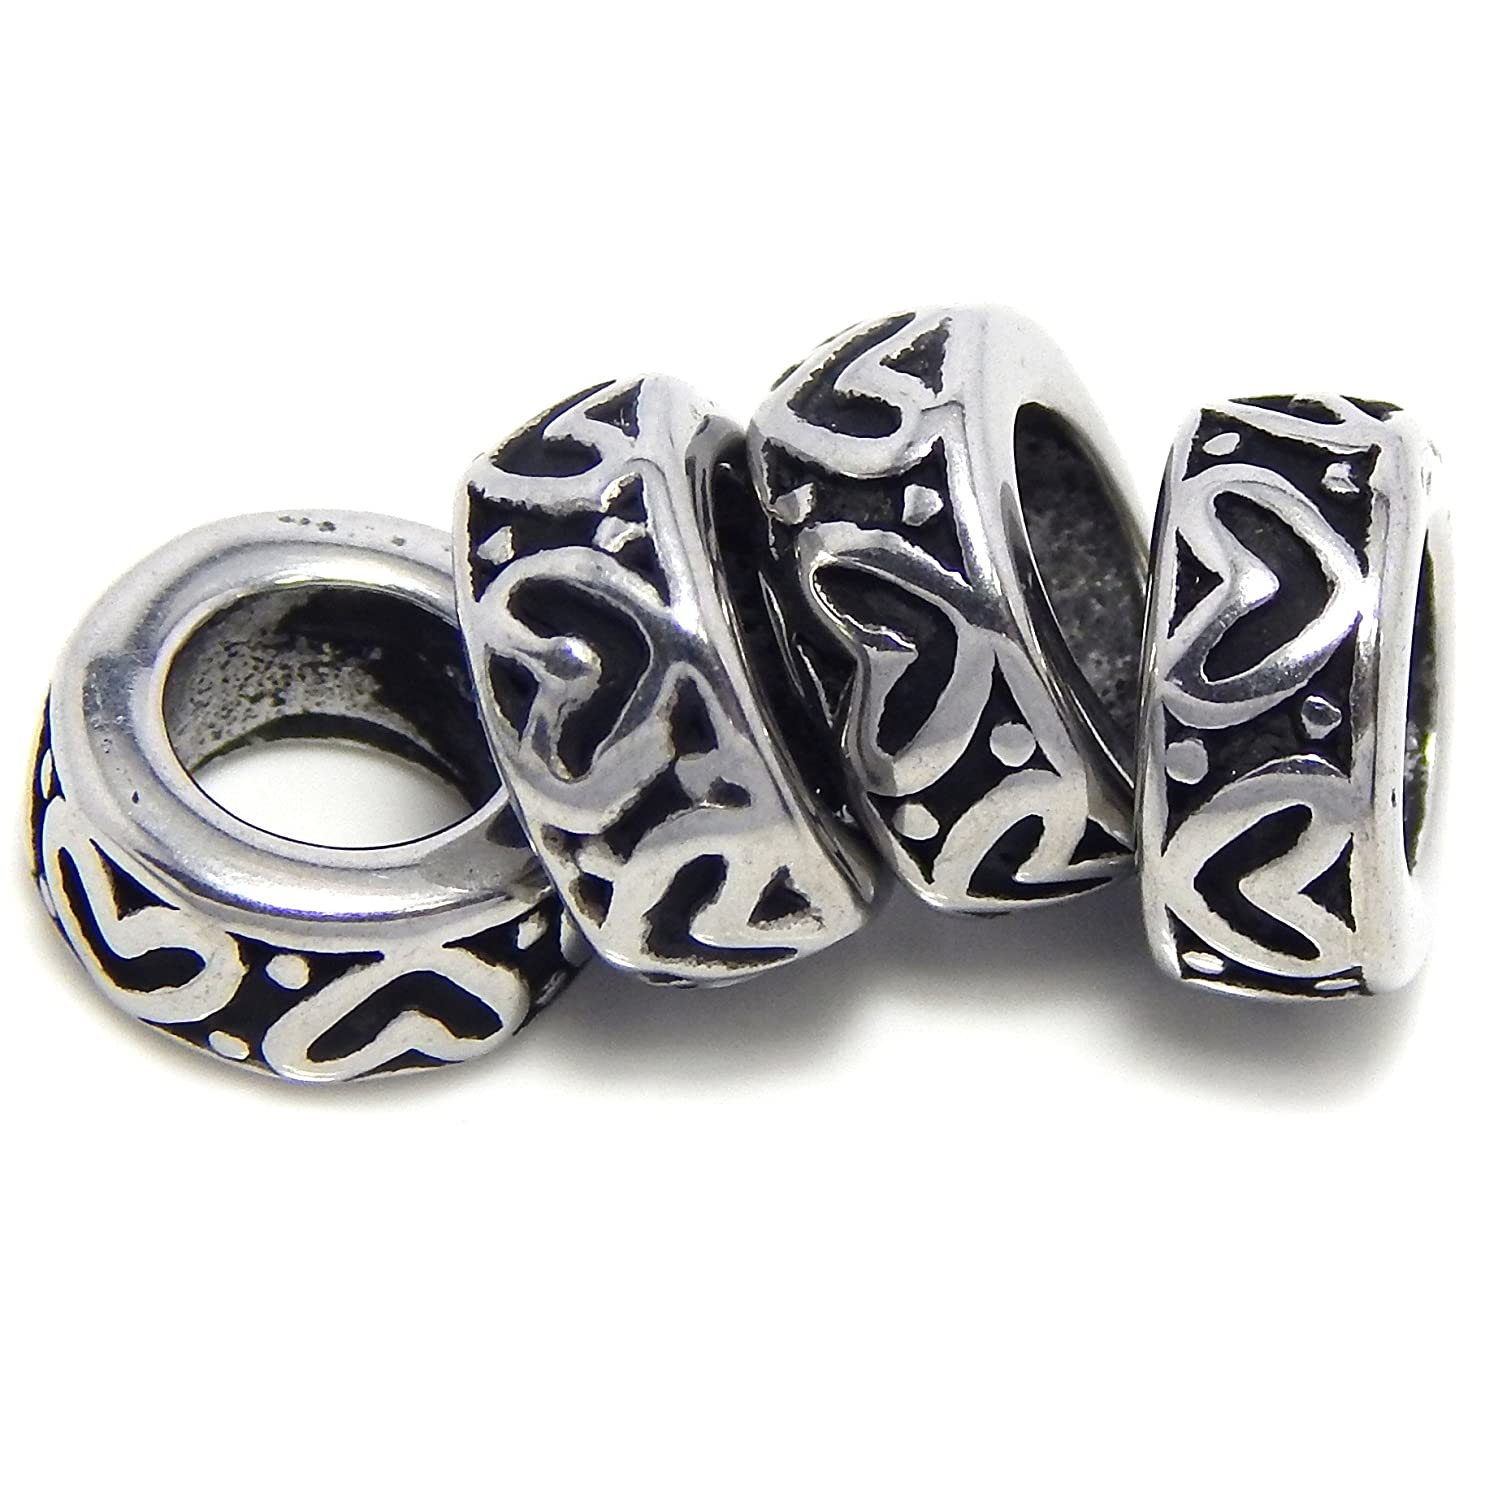 Hearts Design Round Spacers for Charm Bracelets 193 Set of 4 Stainless Steel